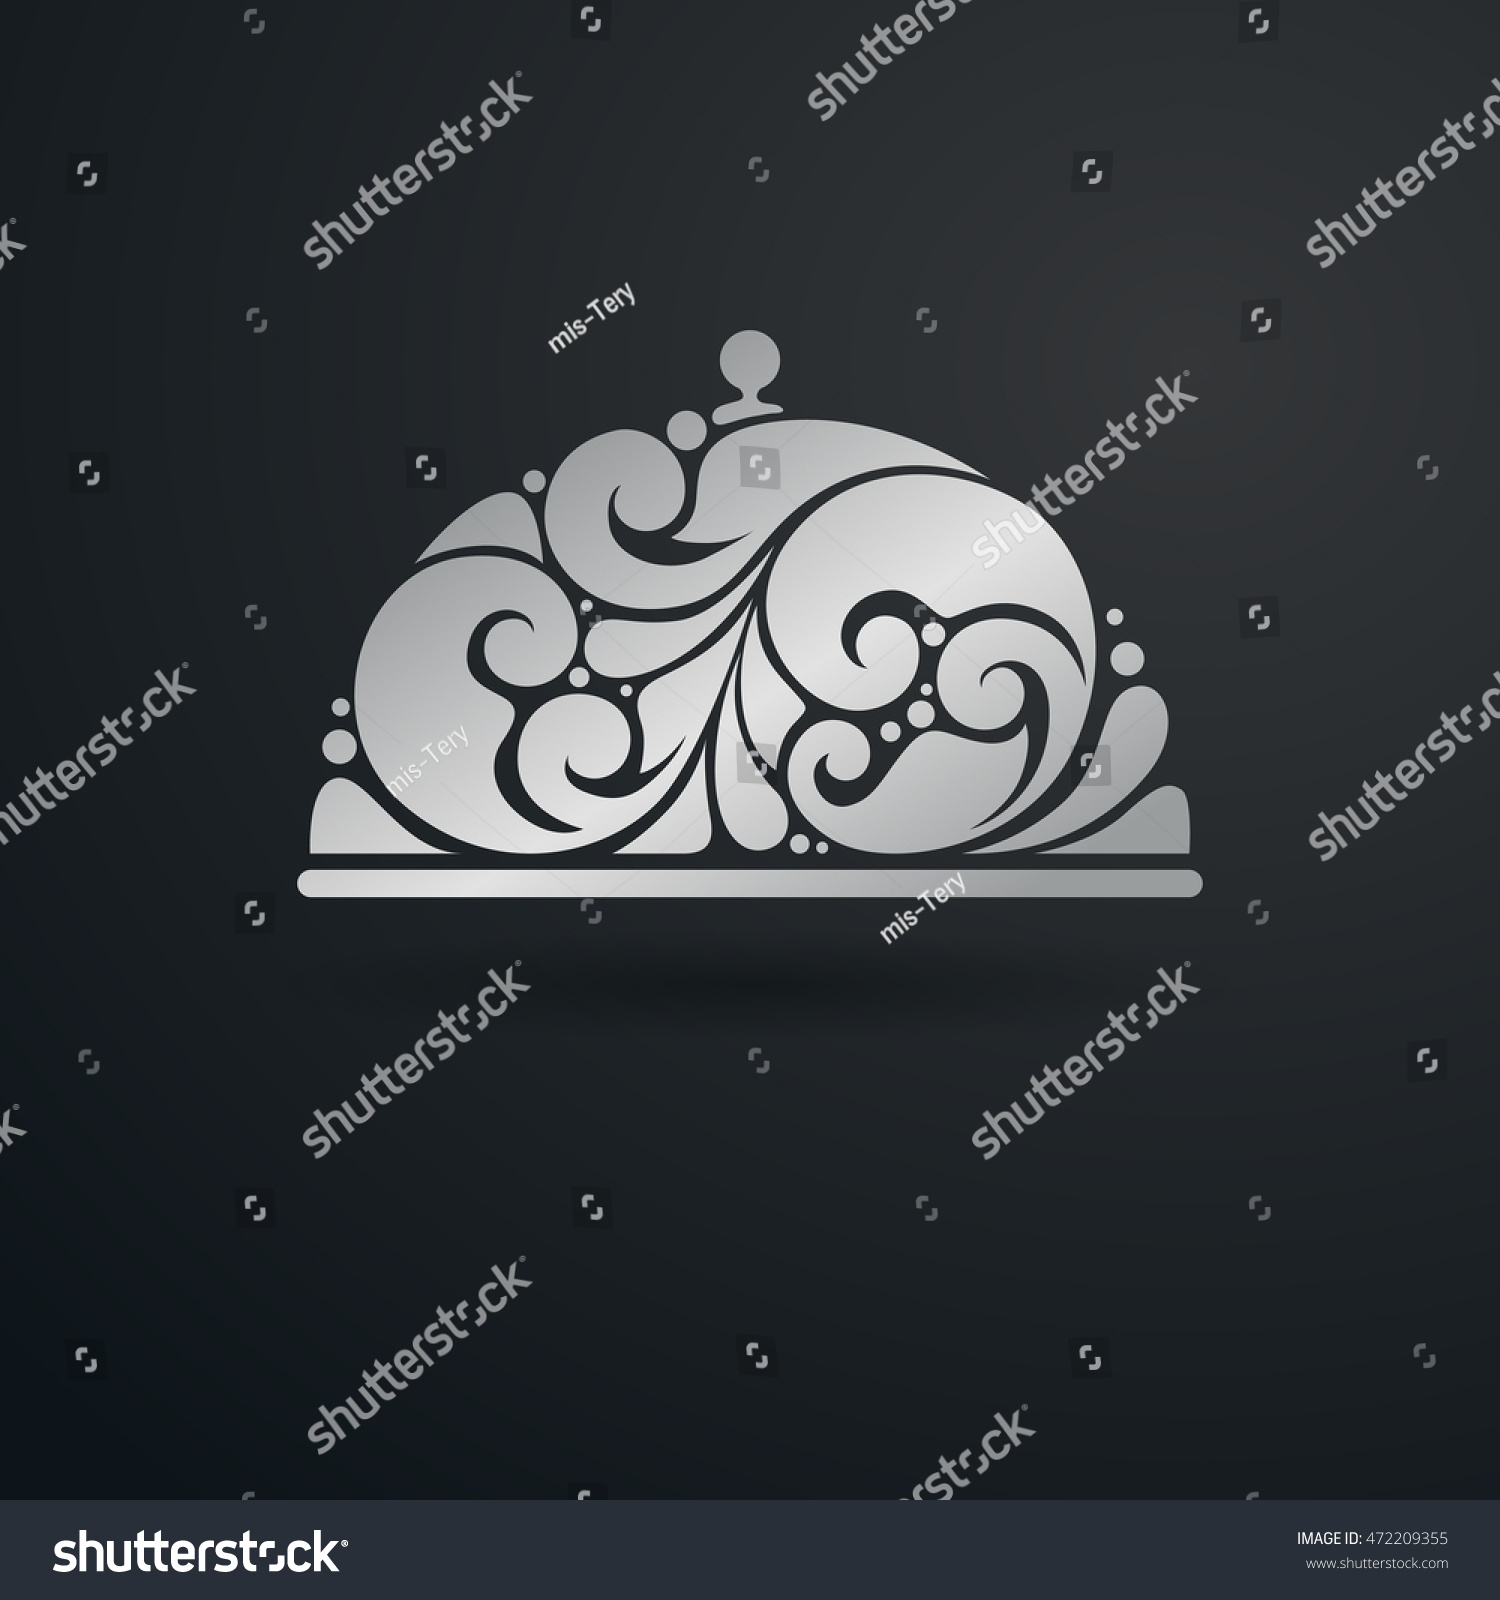 Floral ornamental decorative silver menu dish stock vector floral ornamental decorative silver menu dish symbol icon design element vector illustration tray with lid buycottarizona